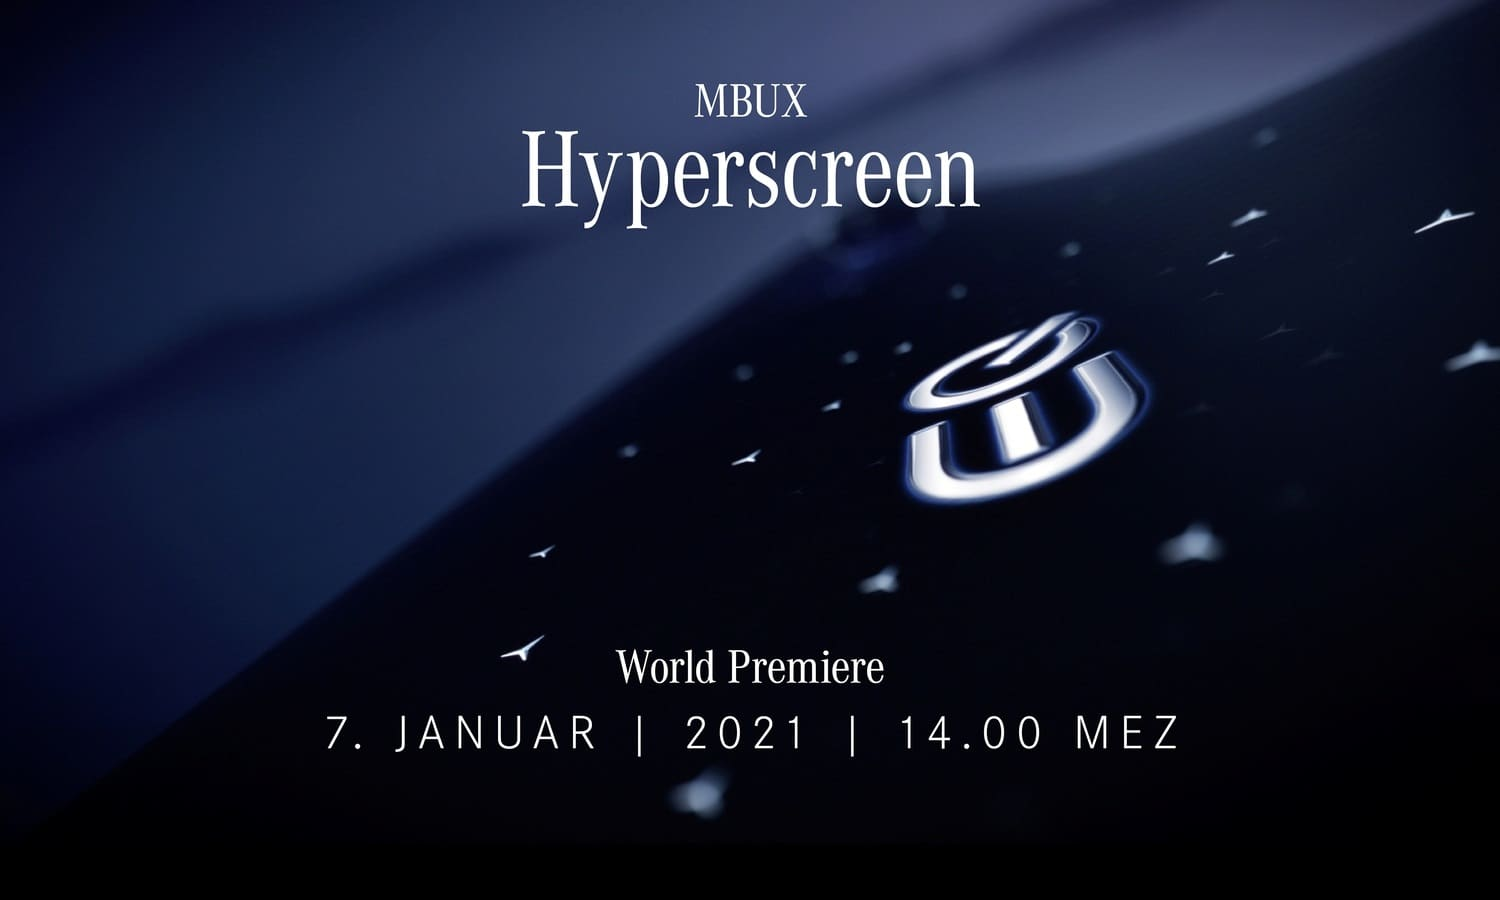 An impressive start to the new year Mercedes-Benz unveils the MBUX Hyperscreen